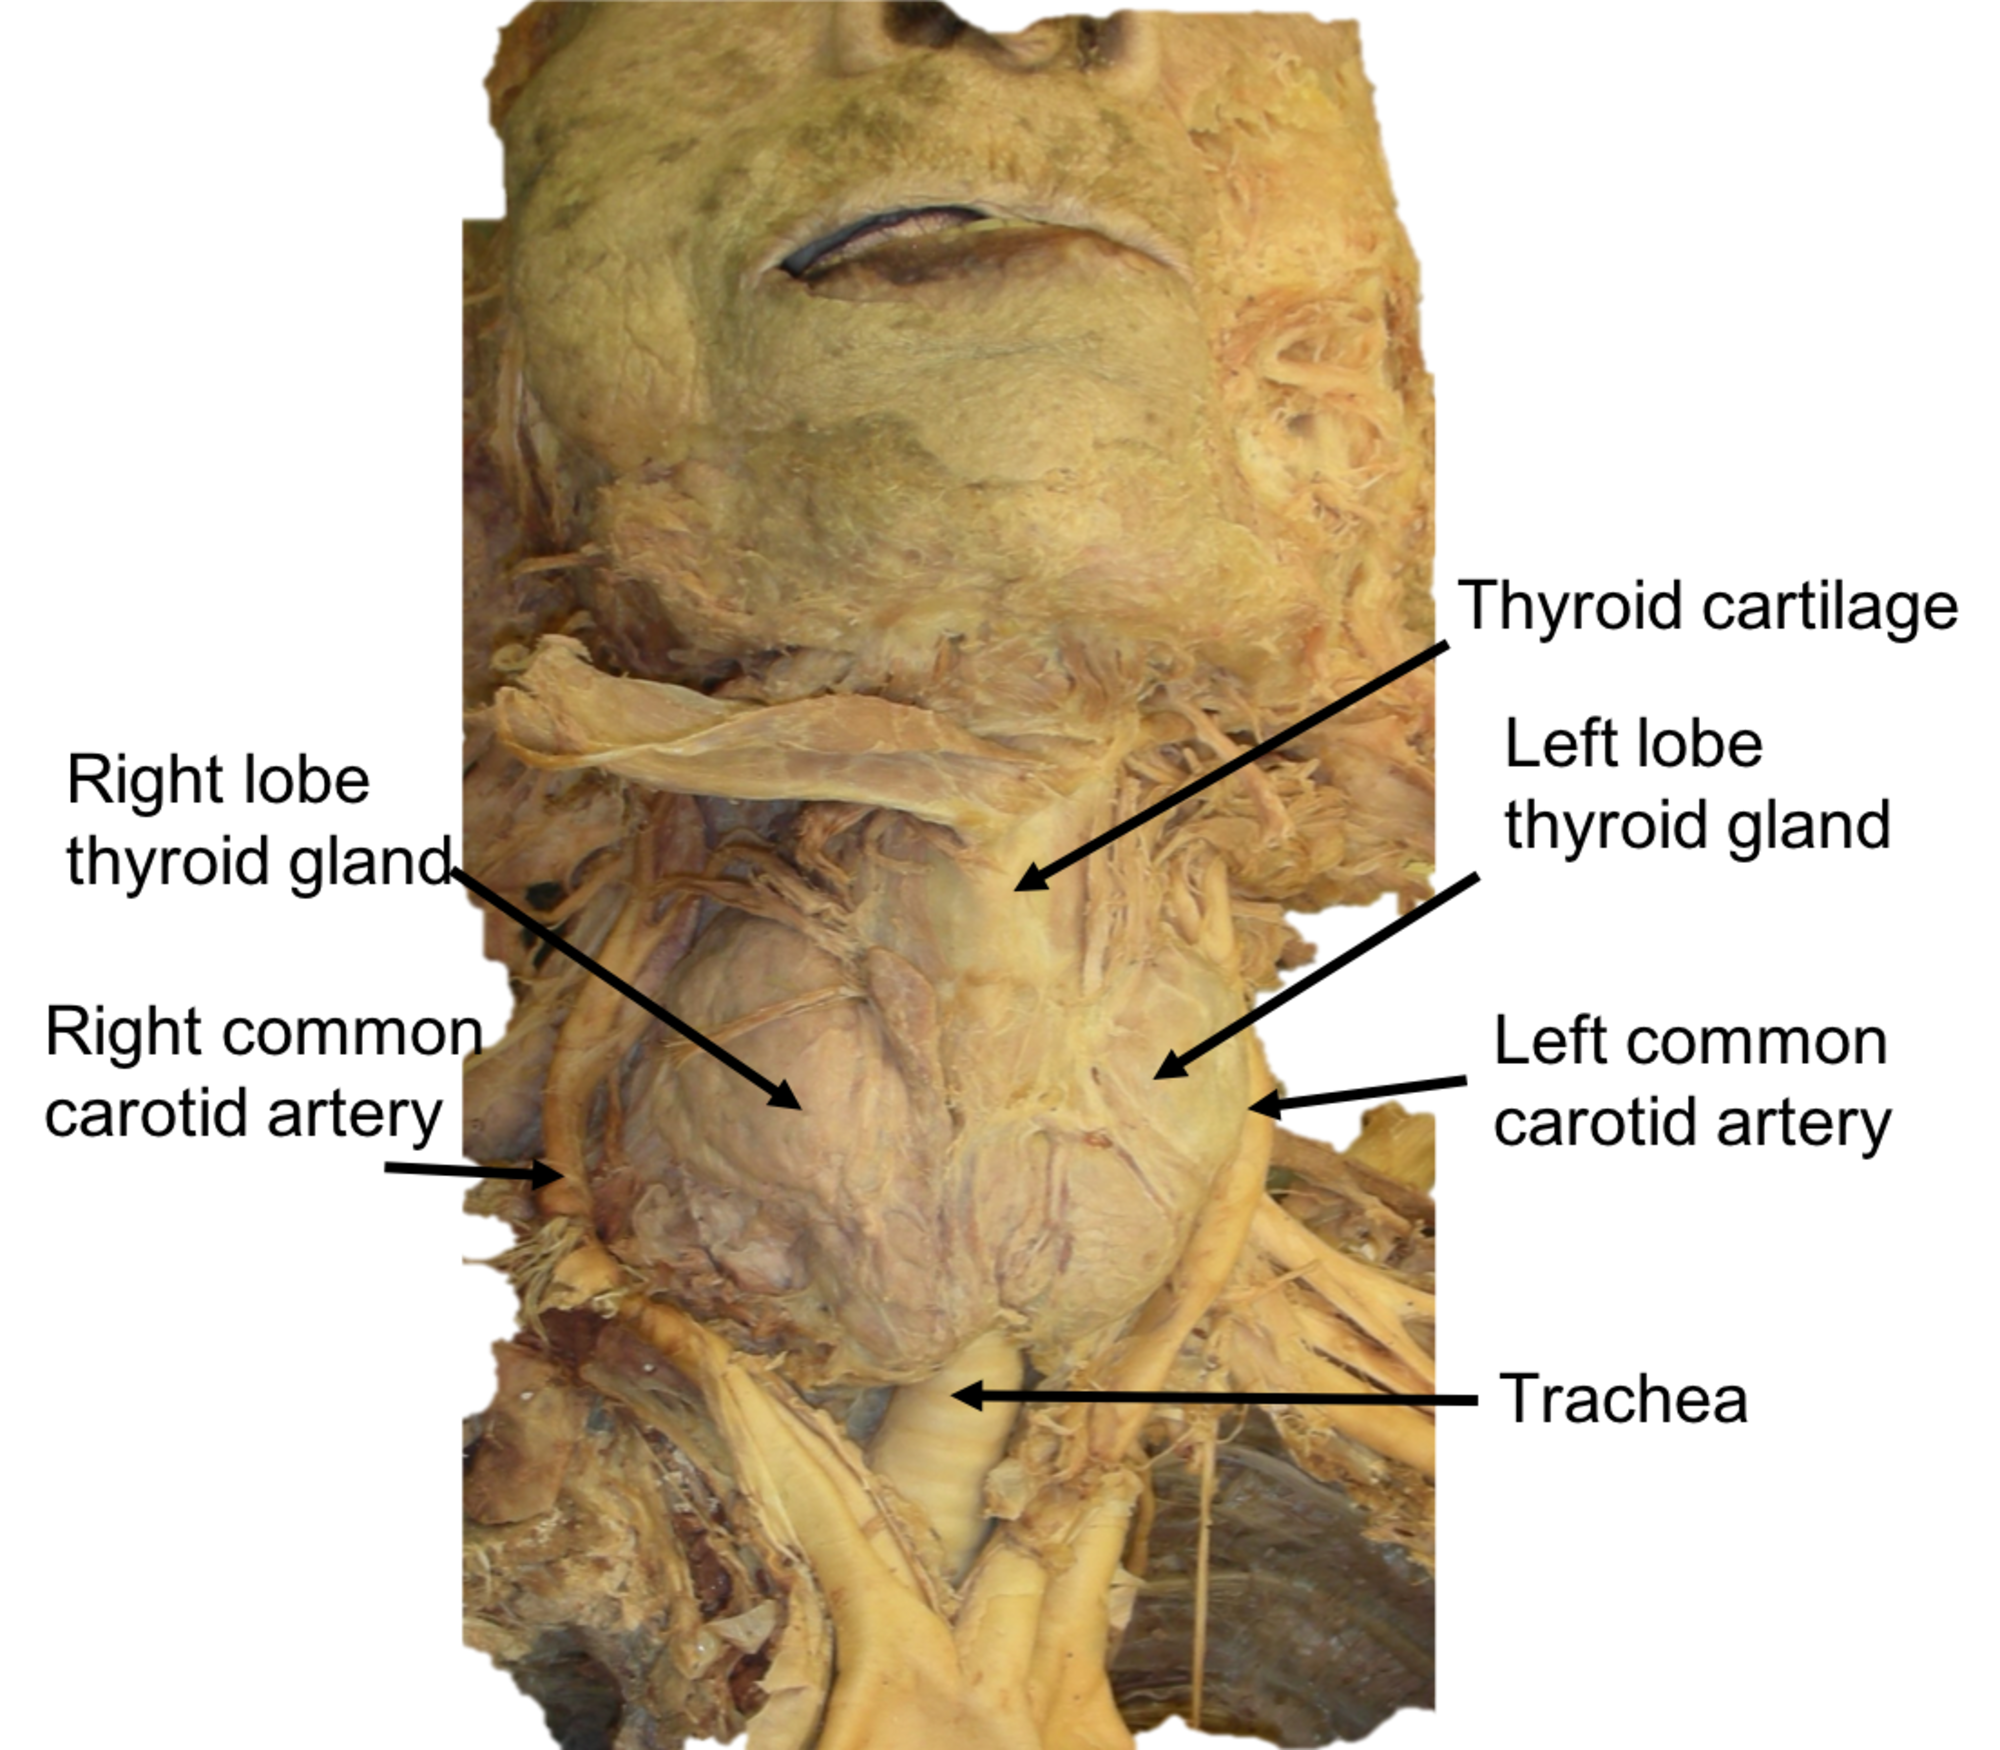 Cureus Bilateral Displacement Of The Common Carotid Arteries By A